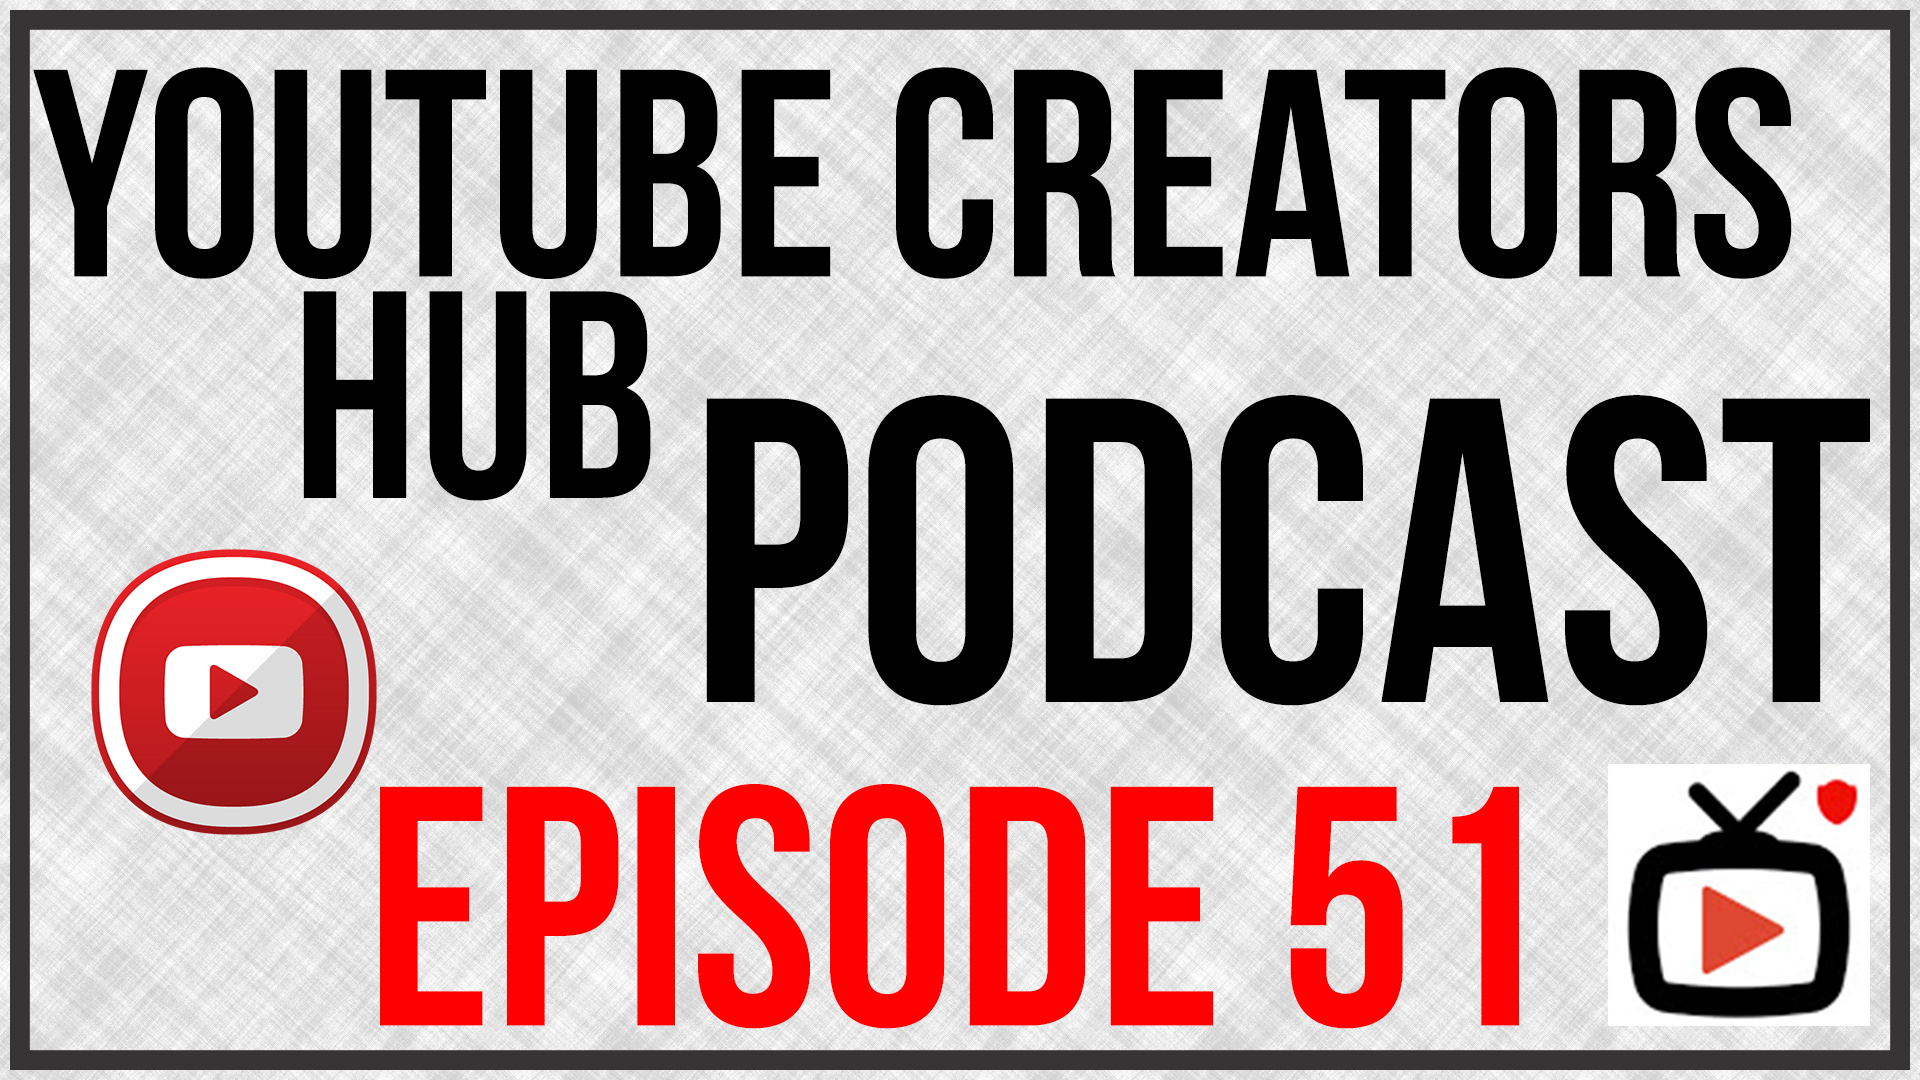 youtube creators hub podcast episode 51